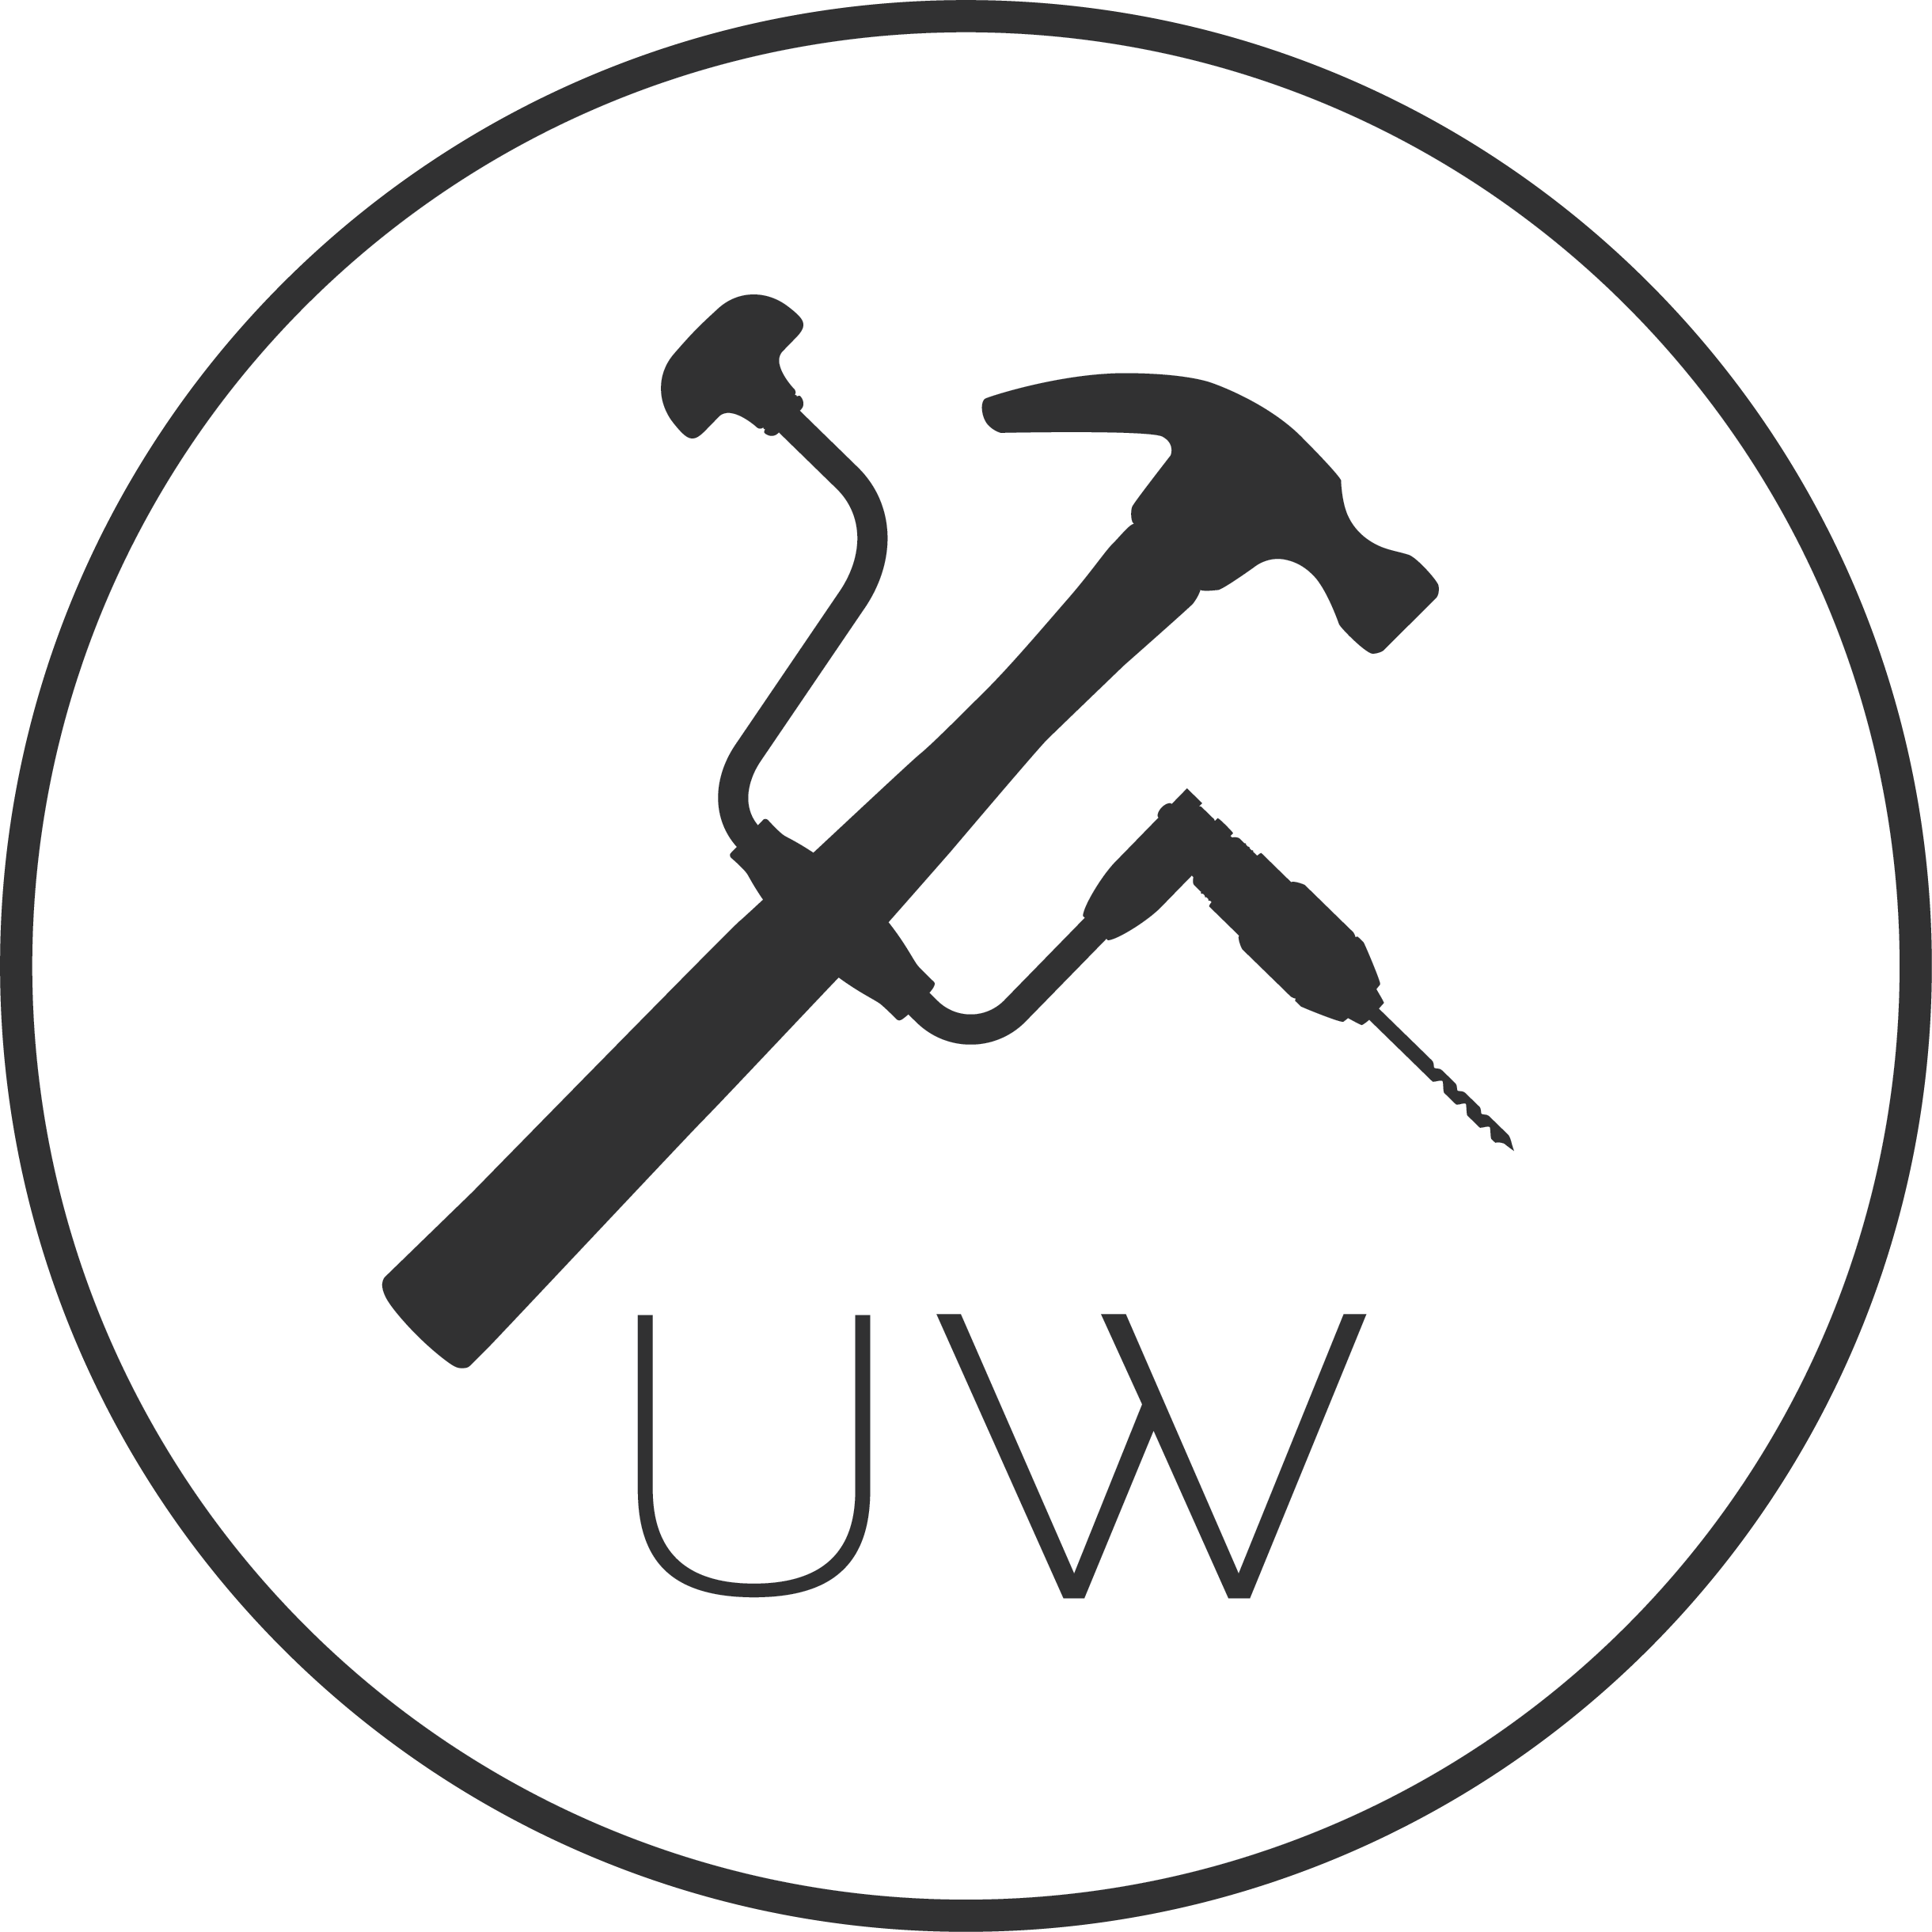 Woodworking school the unplugged. Hammer clipart prototype